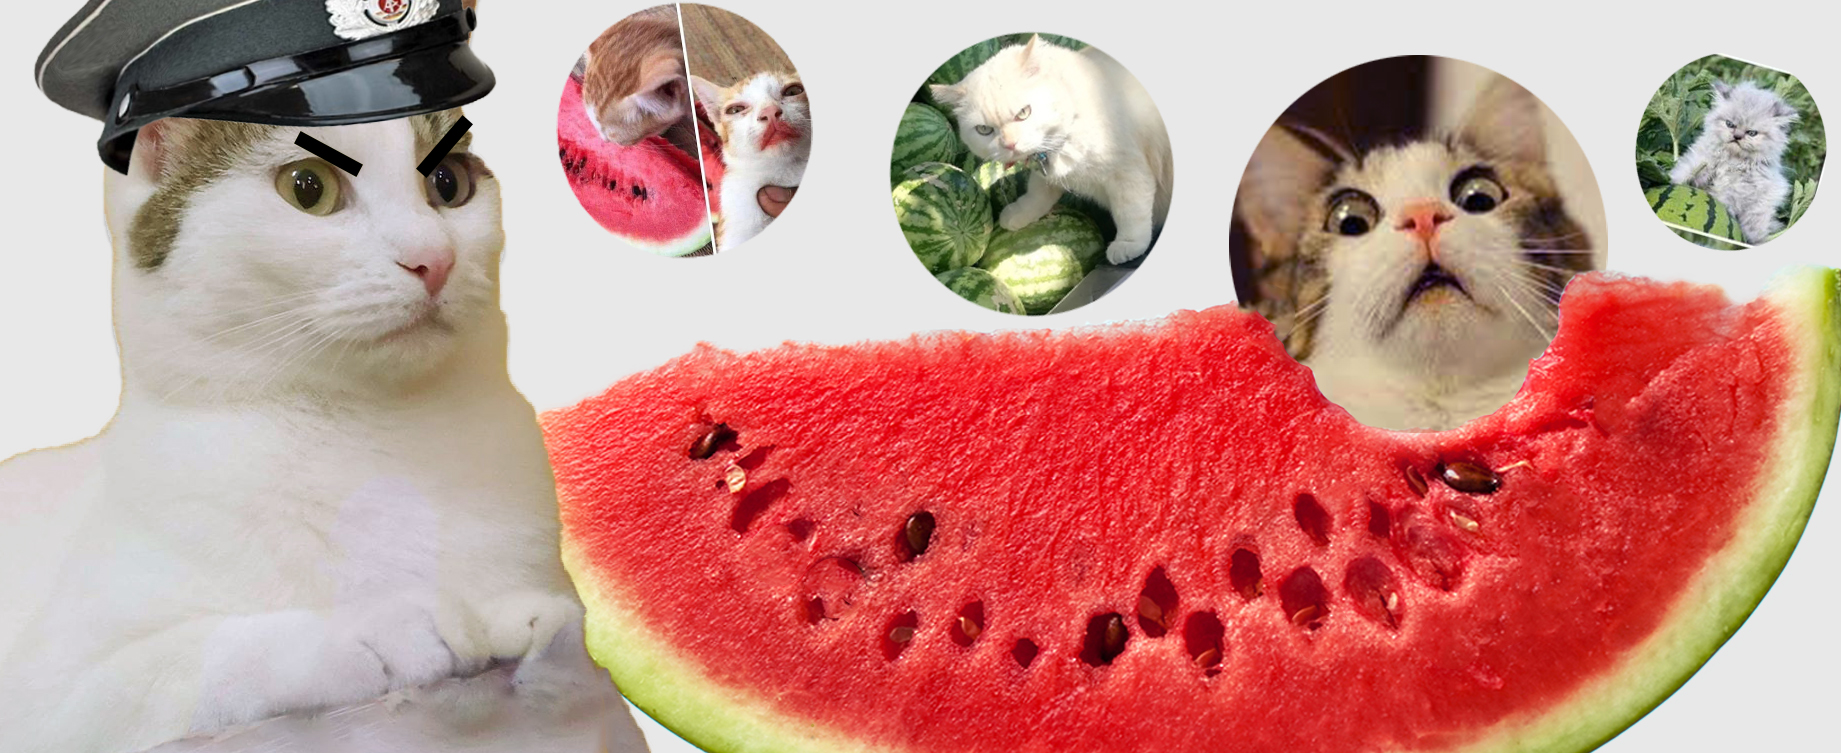 Cats And Watermelons Memes – Cats as Watermelon Masters